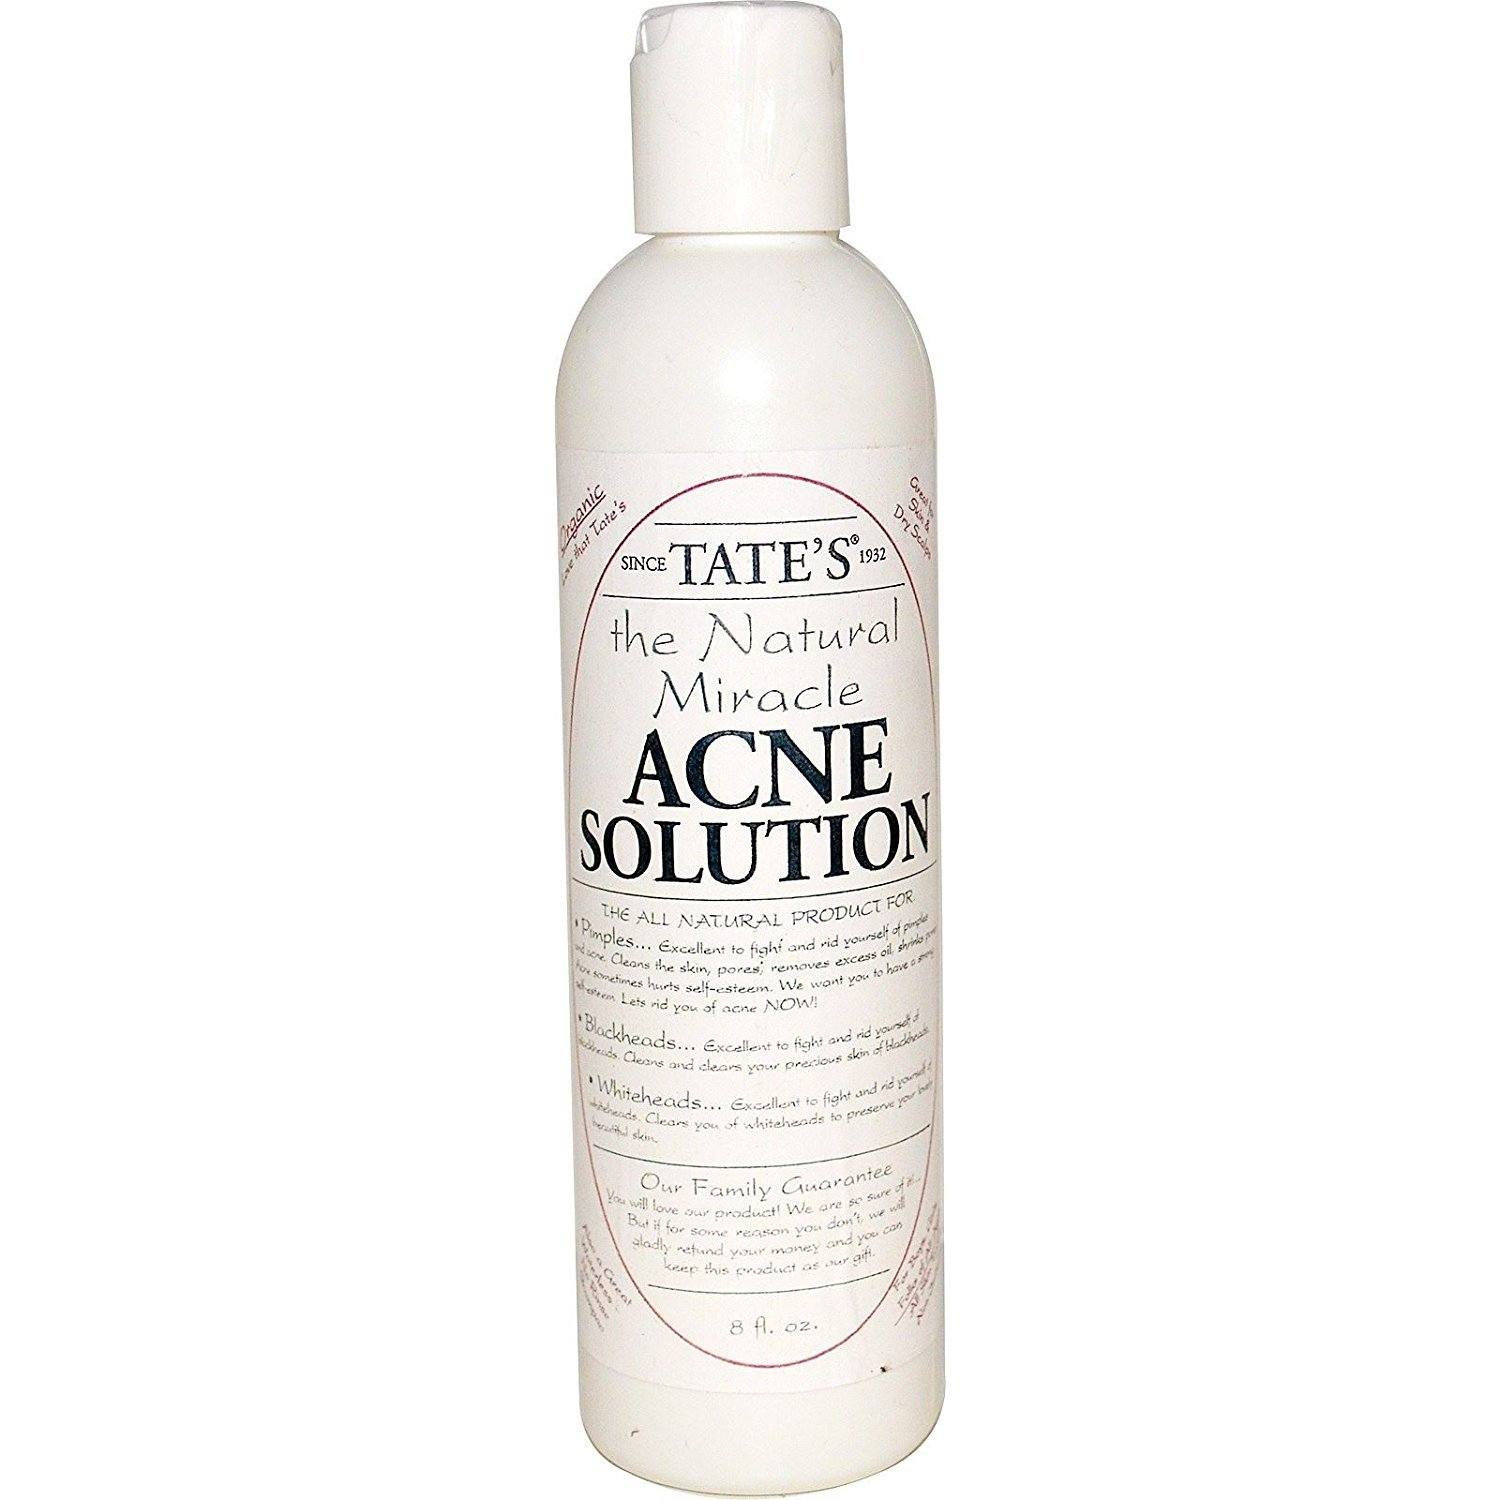 Tate's Tate s The Natural Miracle Acne Solution 8 fl oz